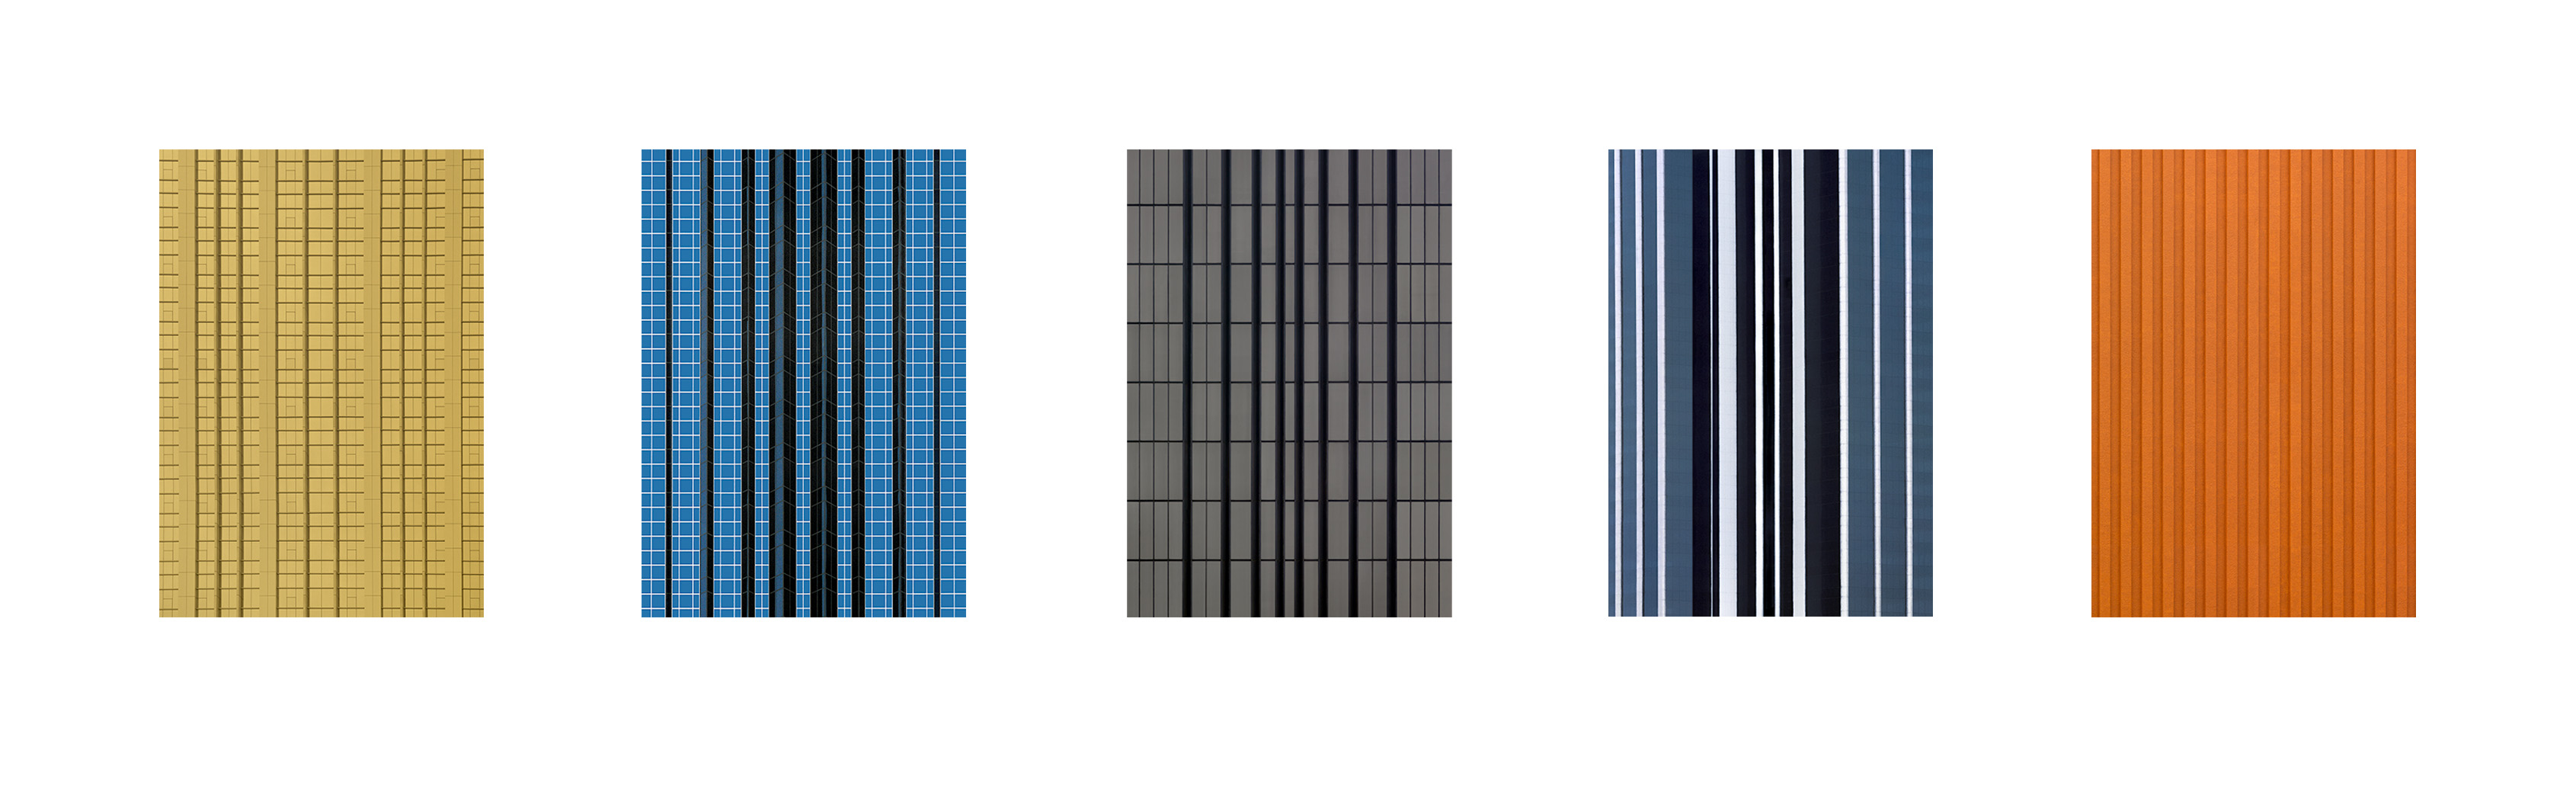 Façade Series F15, 2008 – C-print face-mounted to plexiglass, 50 x 35 cm (19 3/4 x 13 3/4 inches) each, group of 5